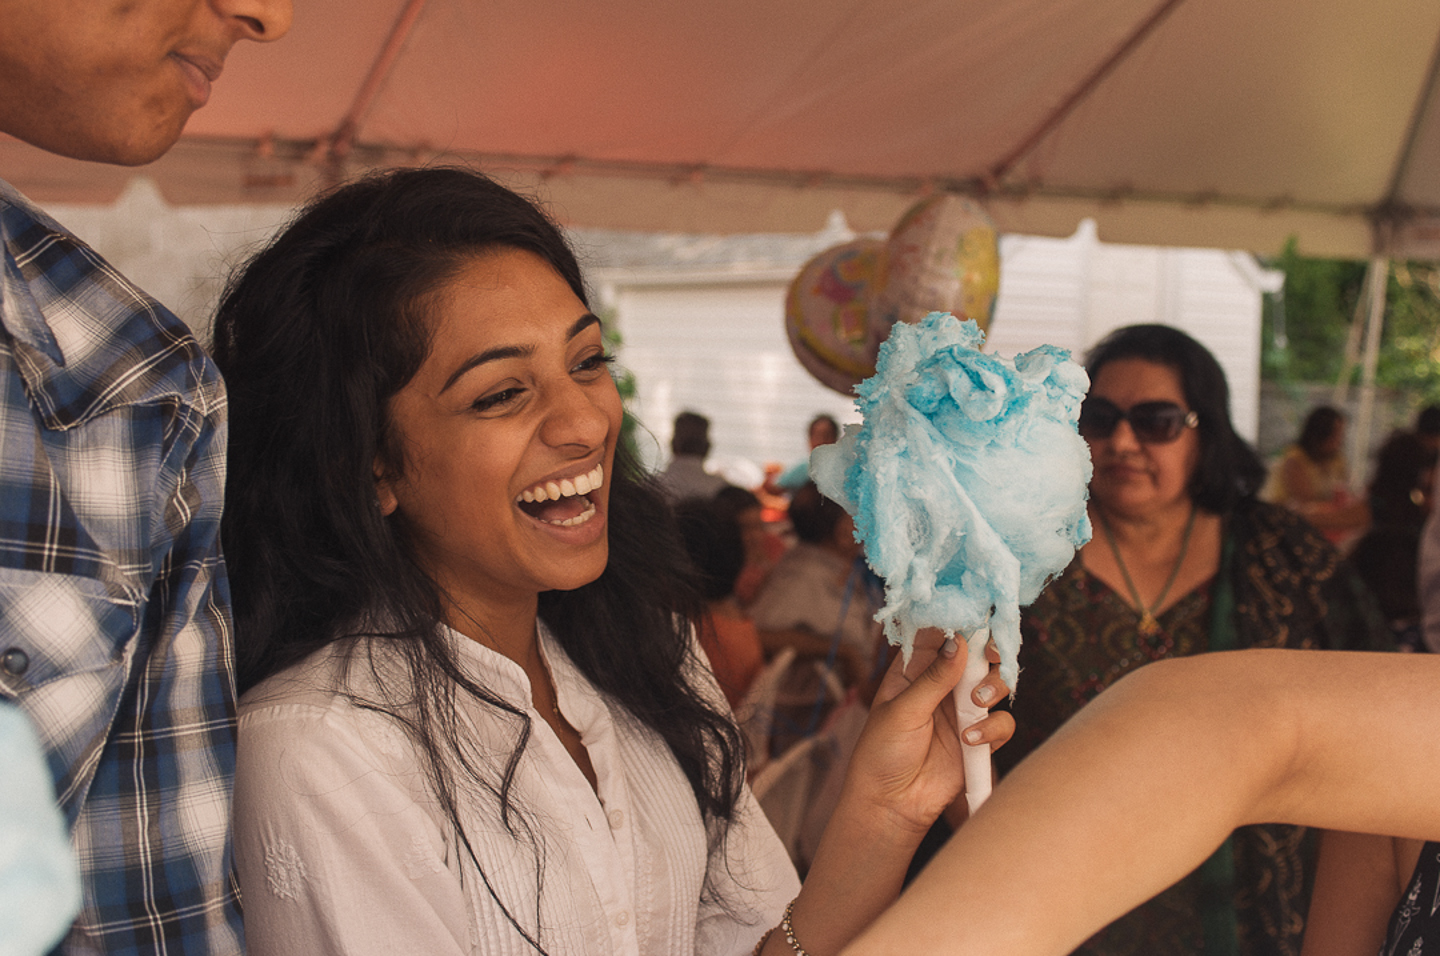 mithun-first-birthday-party-event-photography-long-island-ny-first-birthday-0056.jpg